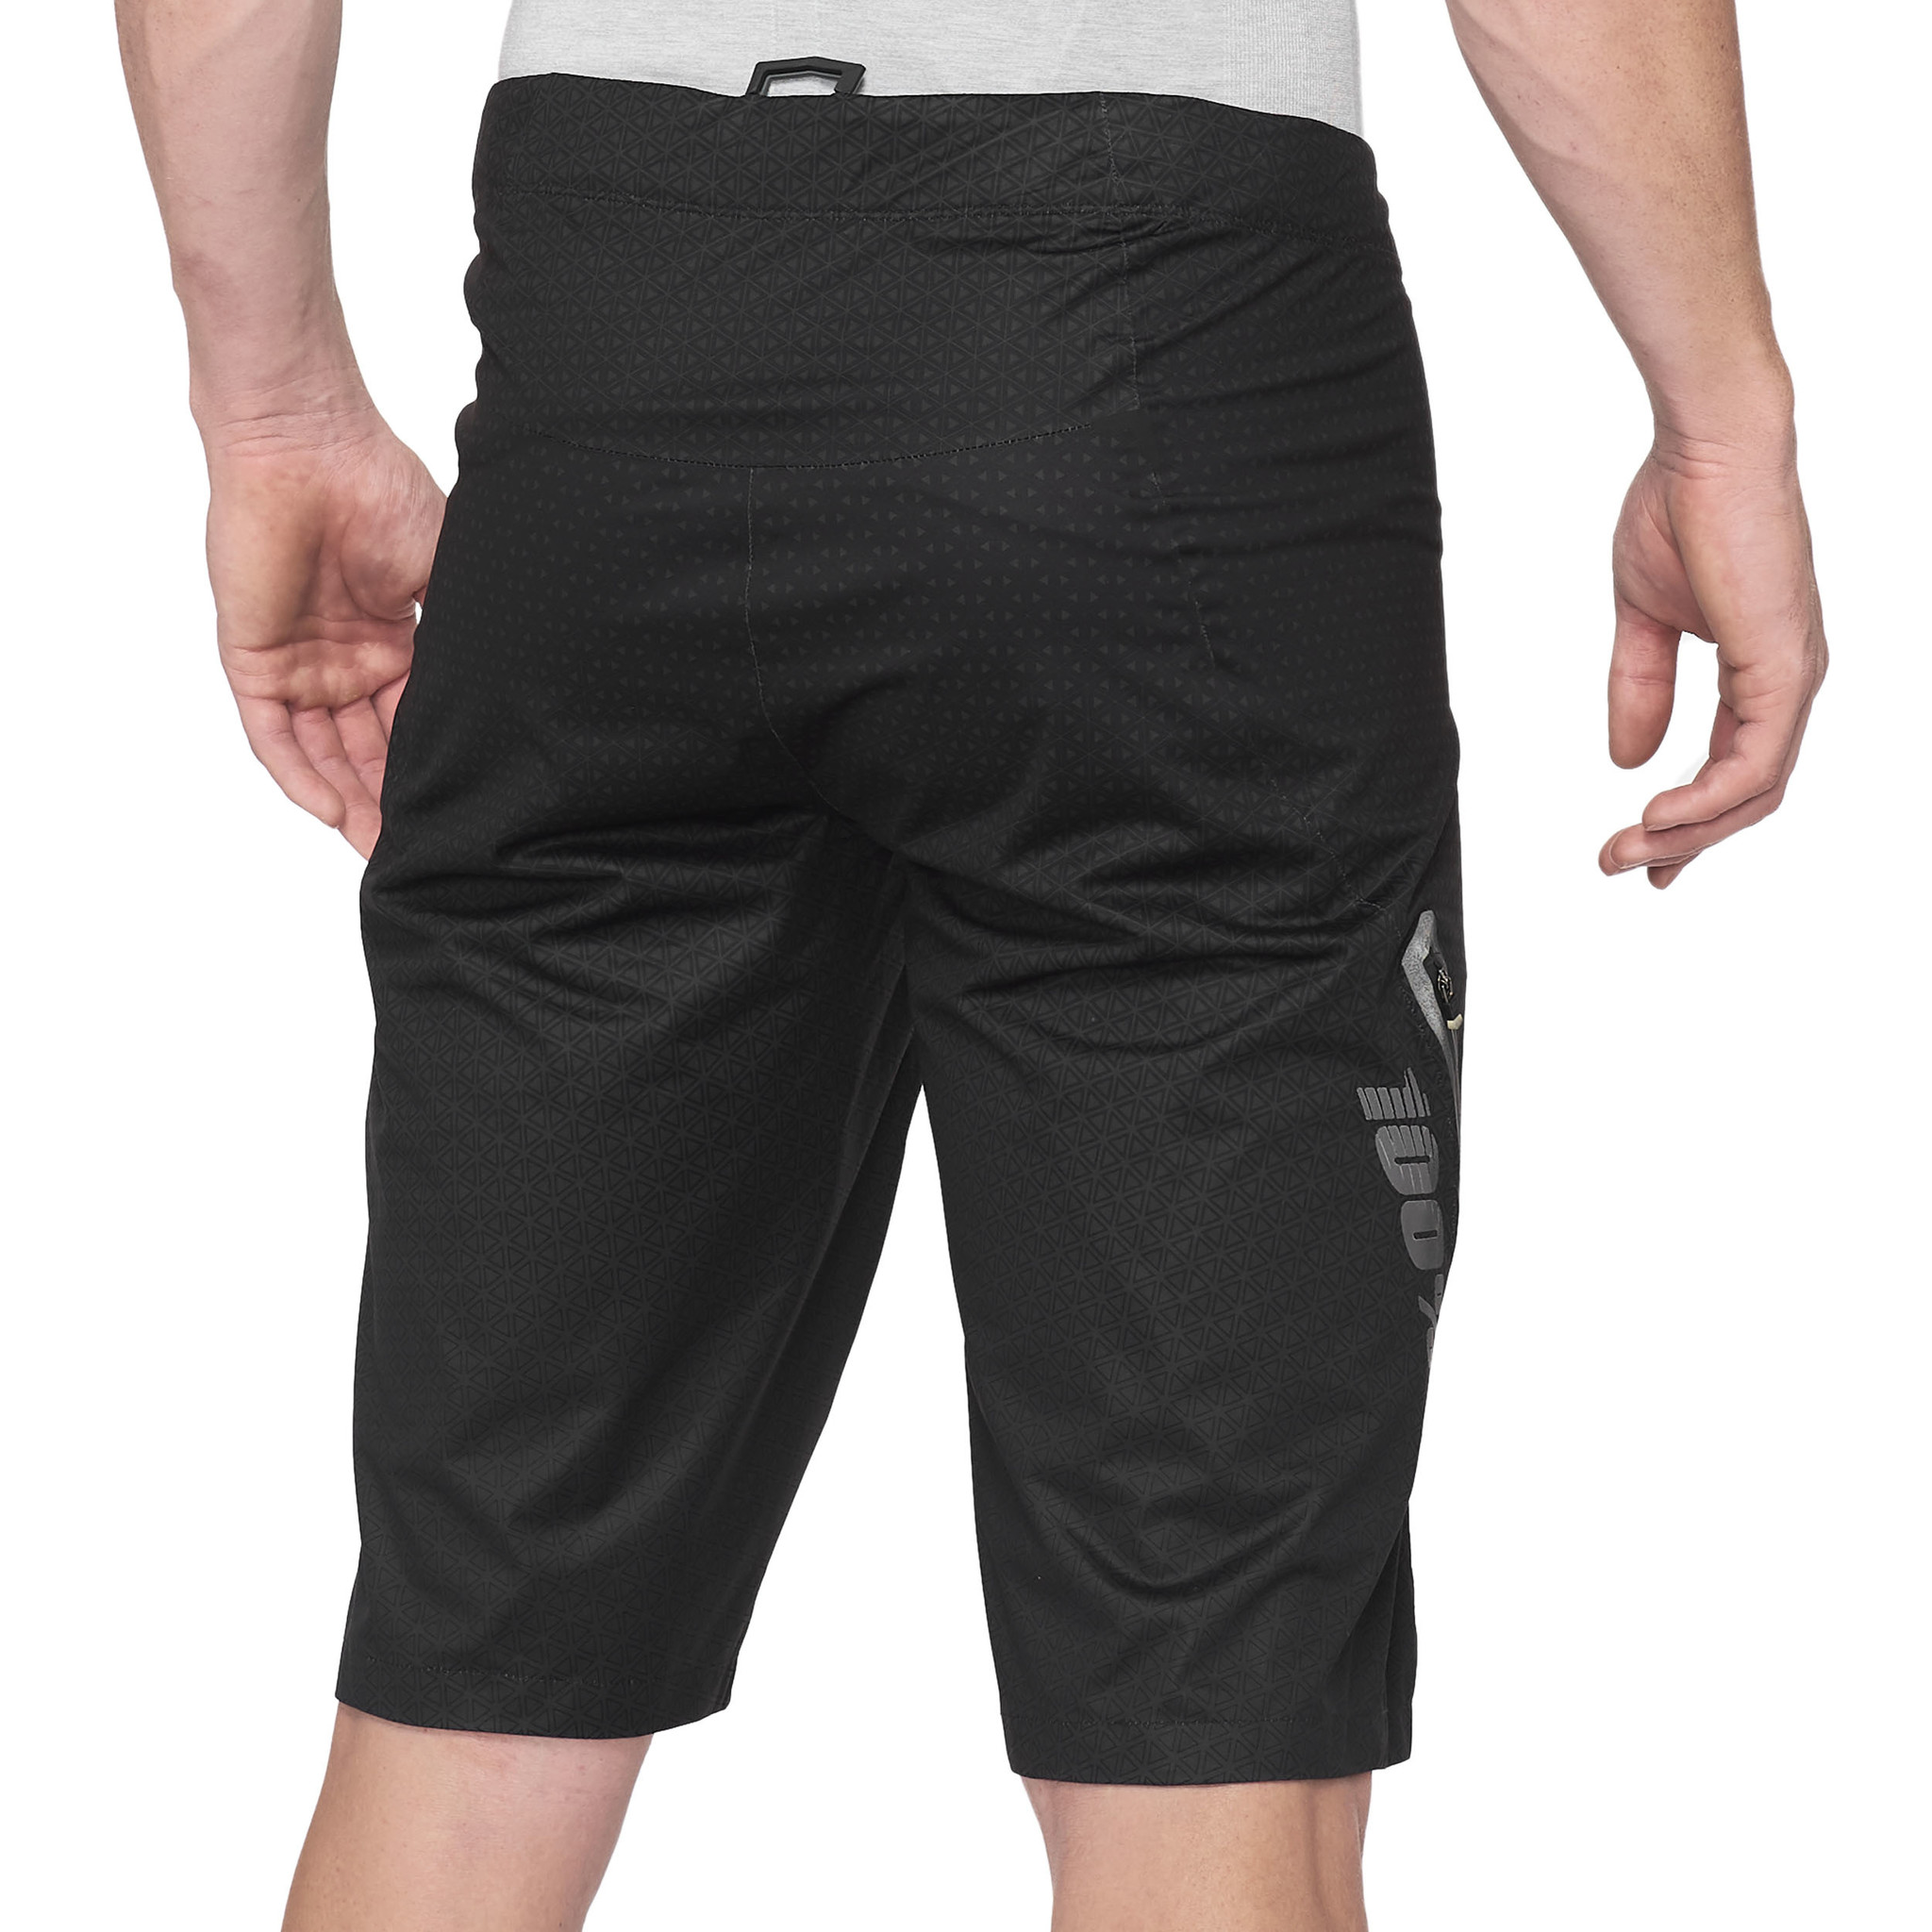 Hydromatic Shorts-2